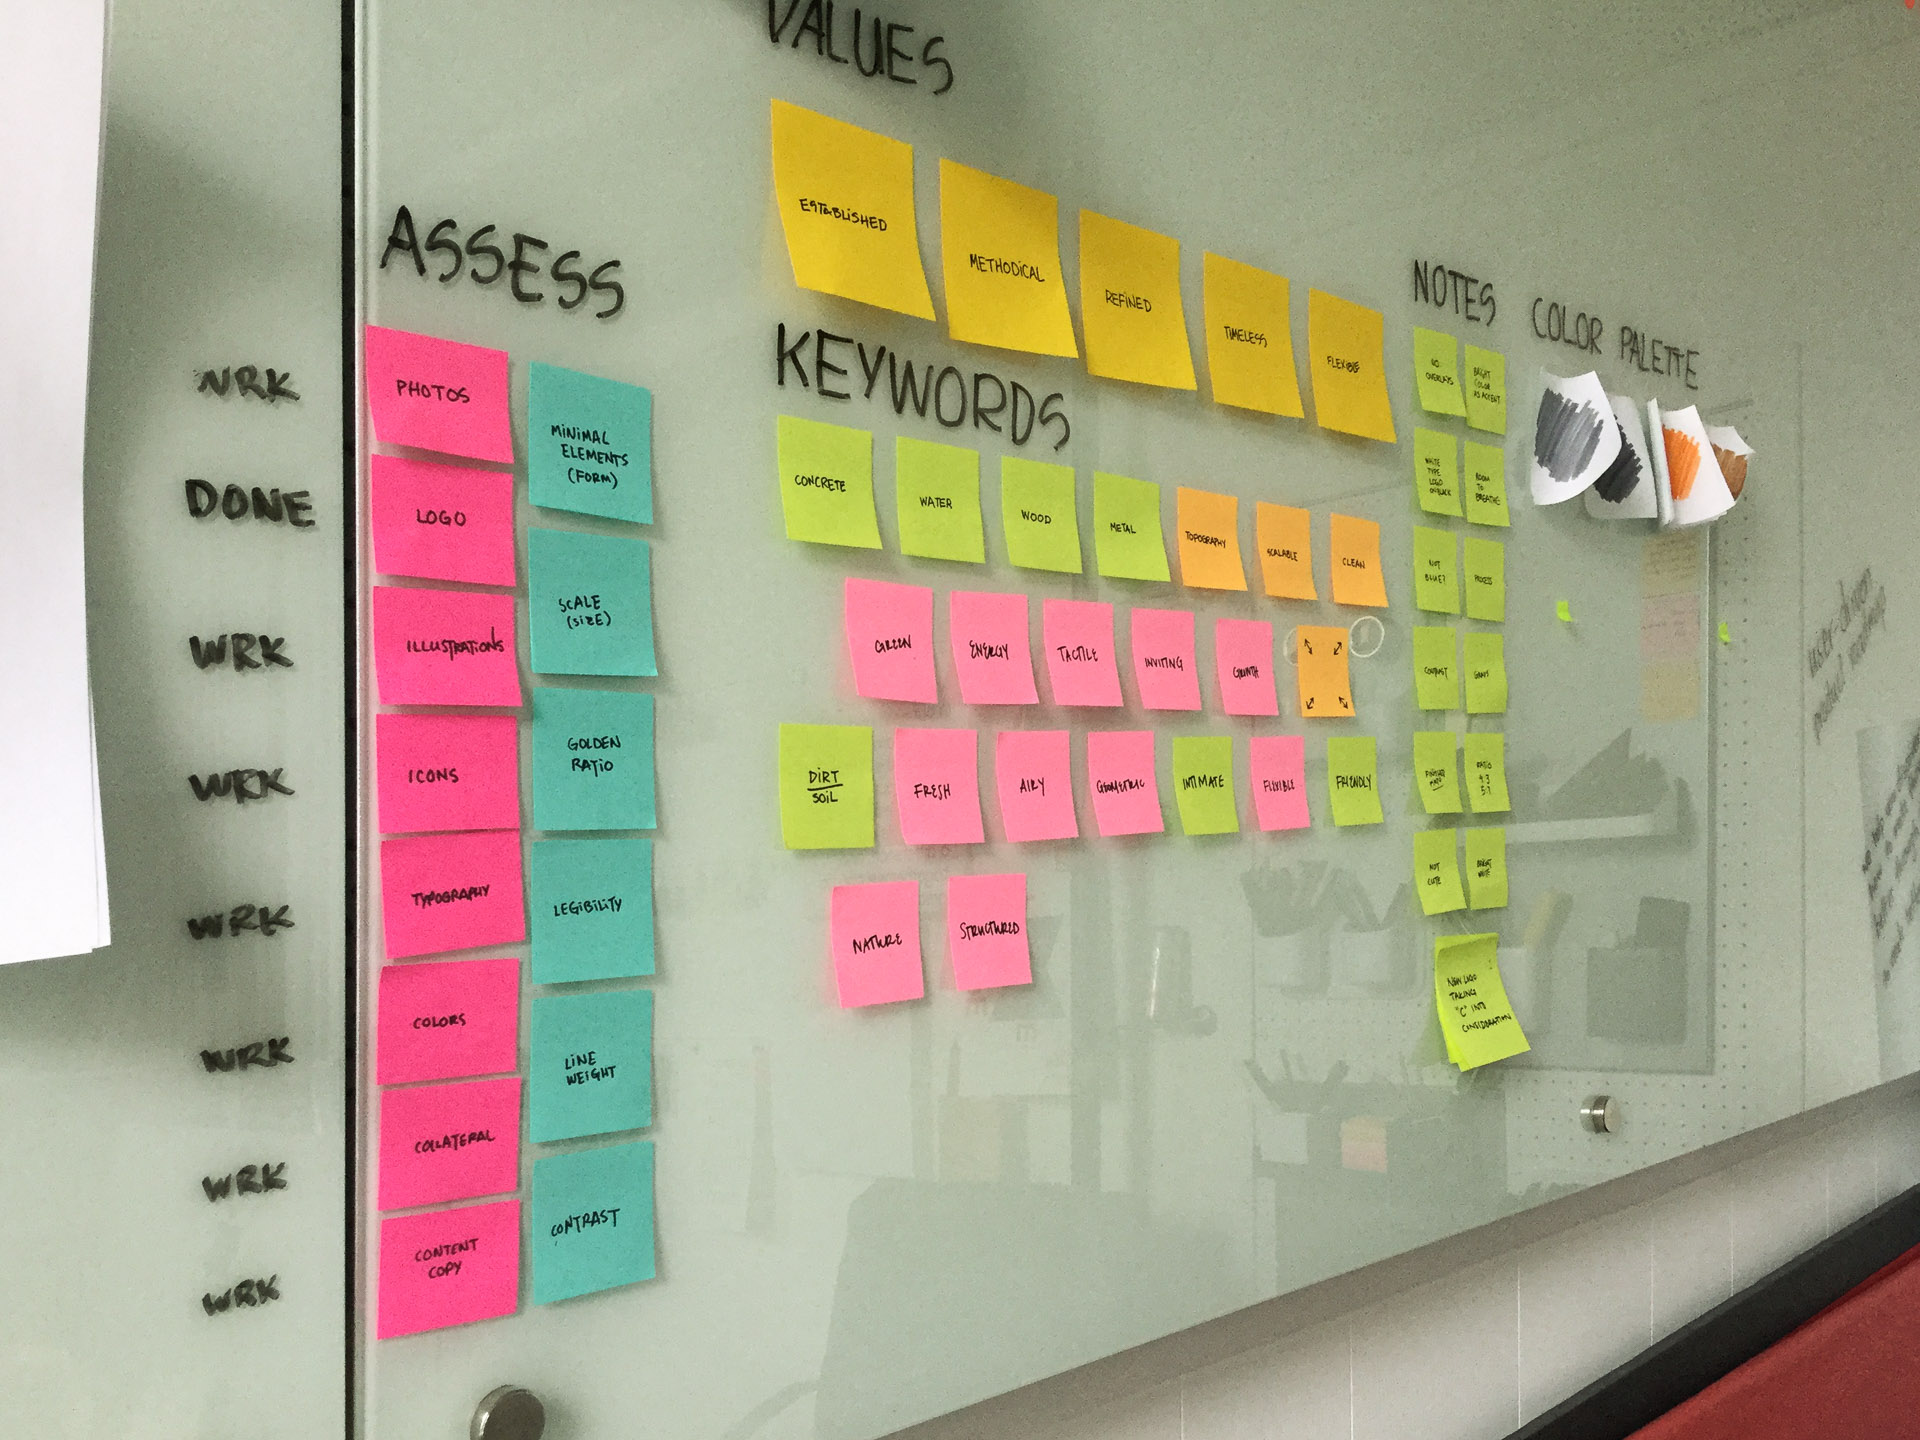 Post-it notes on a whiteboard listing keywords, attributes, and values gathered in the discovery phase